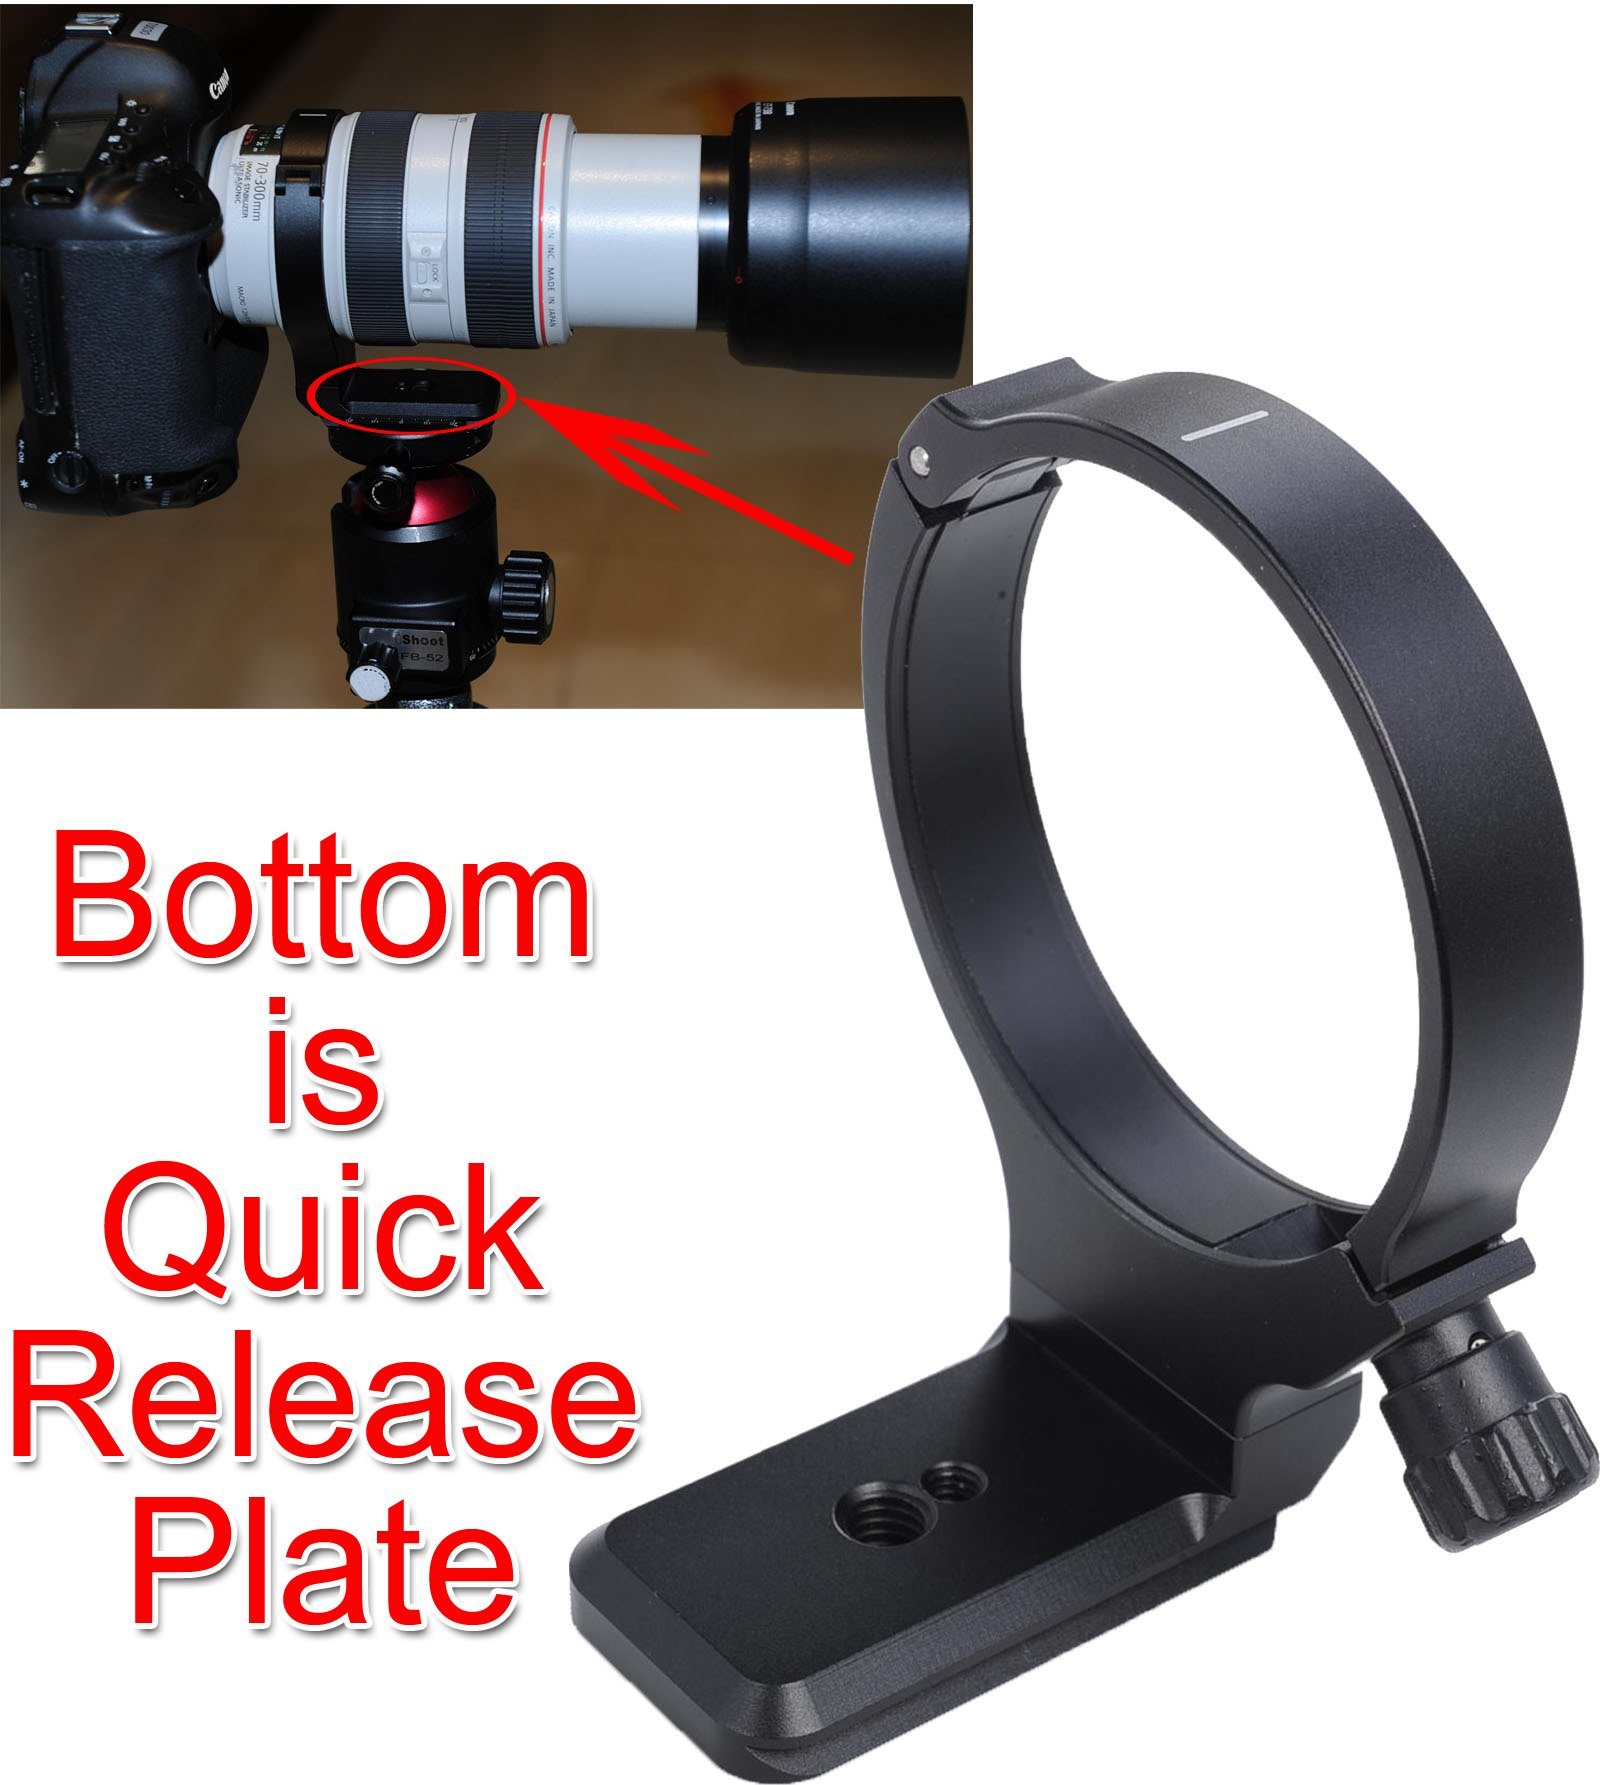 iShoot Latest Metal Lens Support Collar Tripod Mount Ring for Canon EF 28-300mm f/3.5-5.6L IS USM, Canon EF 70-300mm f/4-5.6L IS USM -Bottom is Camera Quick Release Plate by iShoot